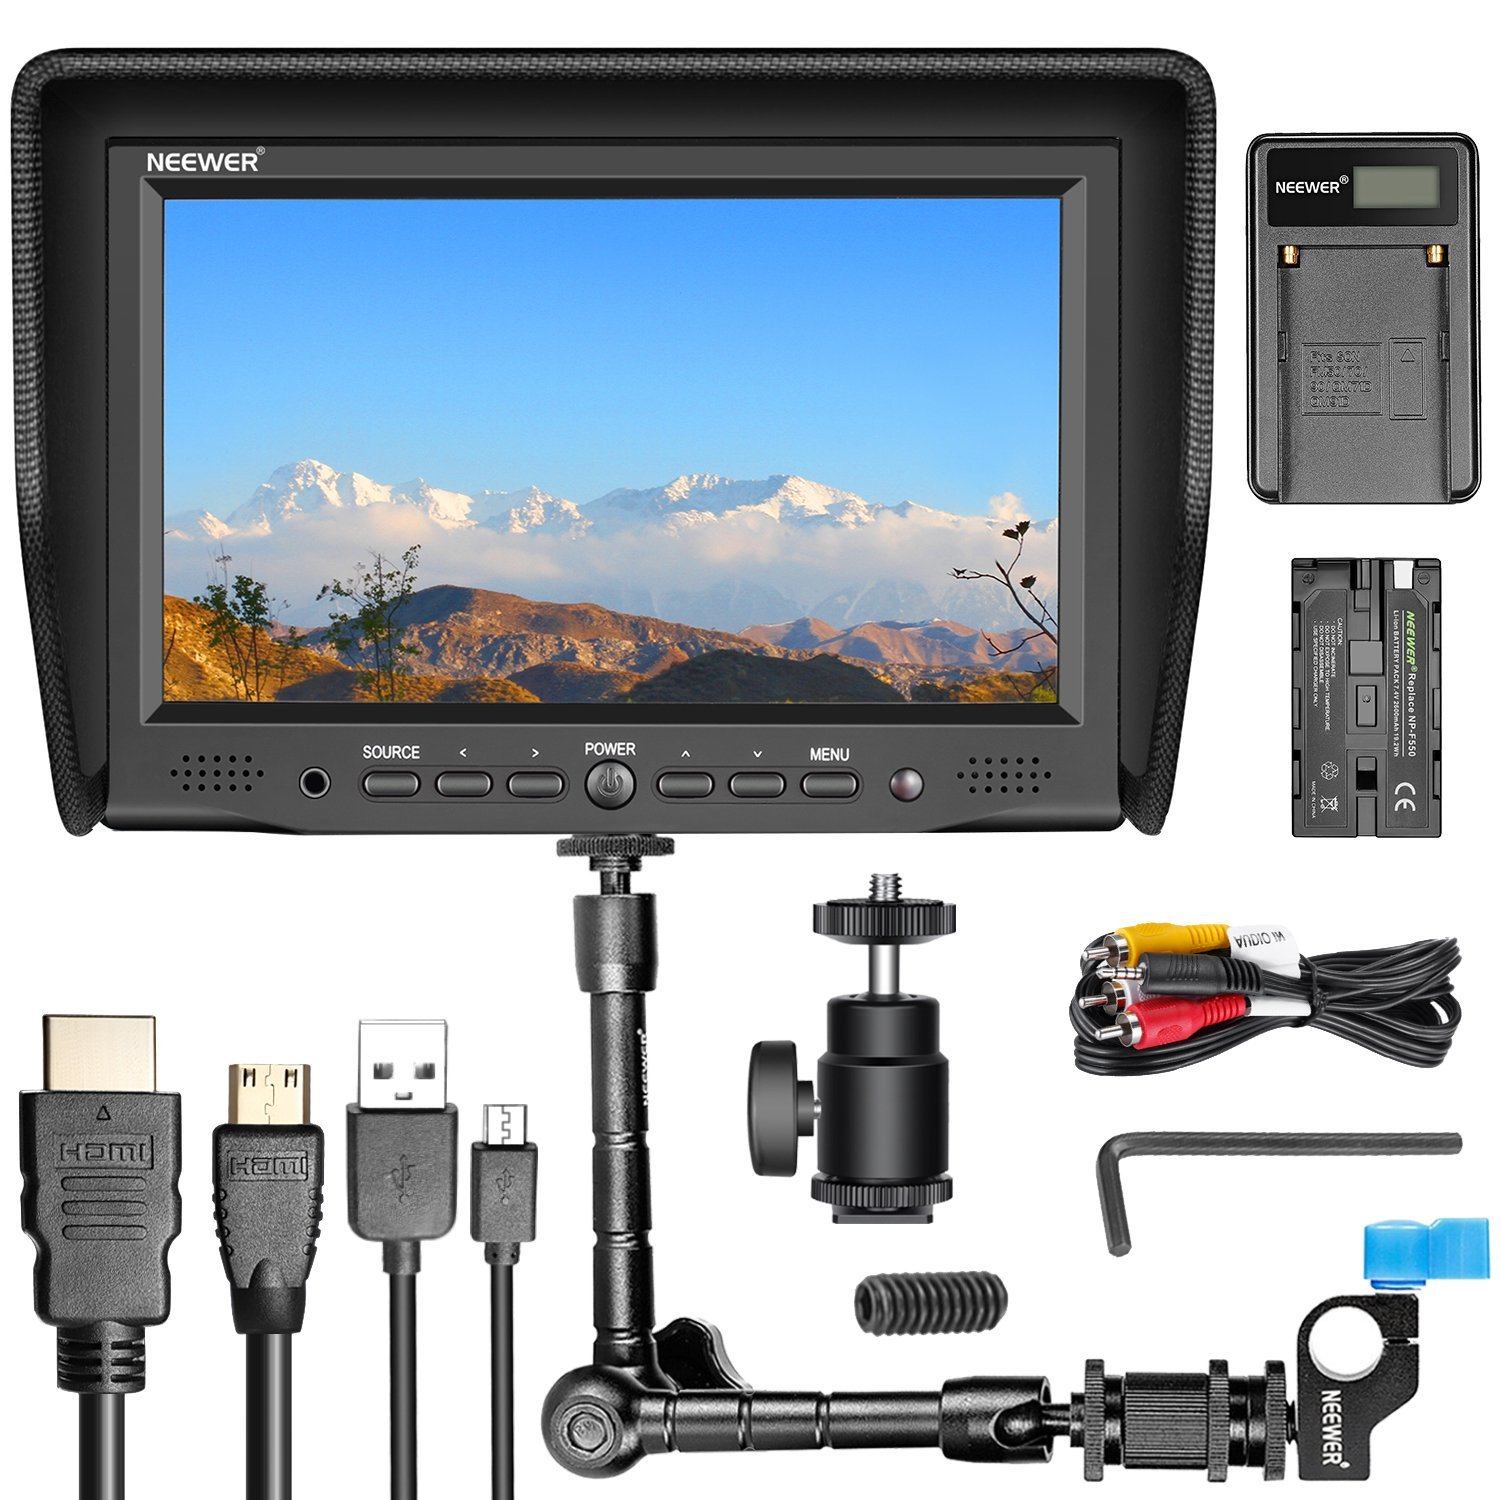 Neewer NW-708M 7 inches On-Camera Field Monitor Kit:800x480 High Resolution IPS Screen Monitor, 11 inches Magic Arm with Rod Clamp, Battery Charger, Replacement Battery for Sony F550 by Neewer